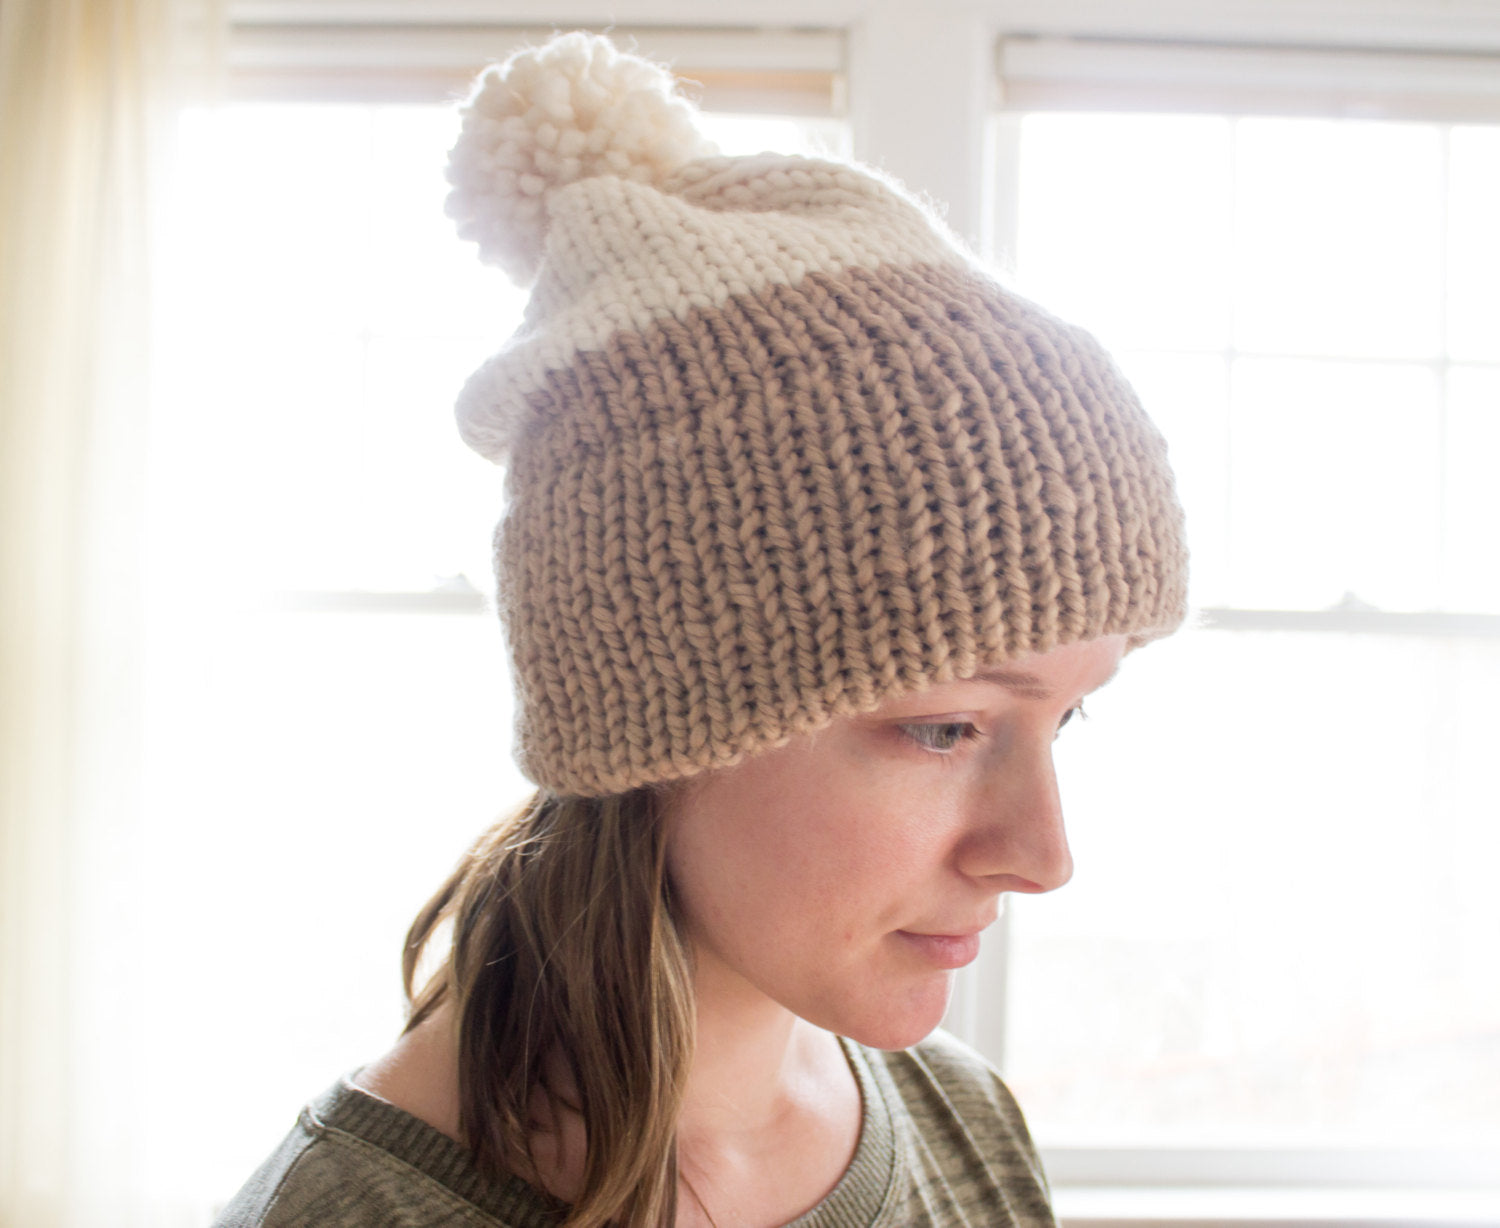 Knitting Pattern | Double-Knit Brim Slouchy Beanie | Knit Beanie ...